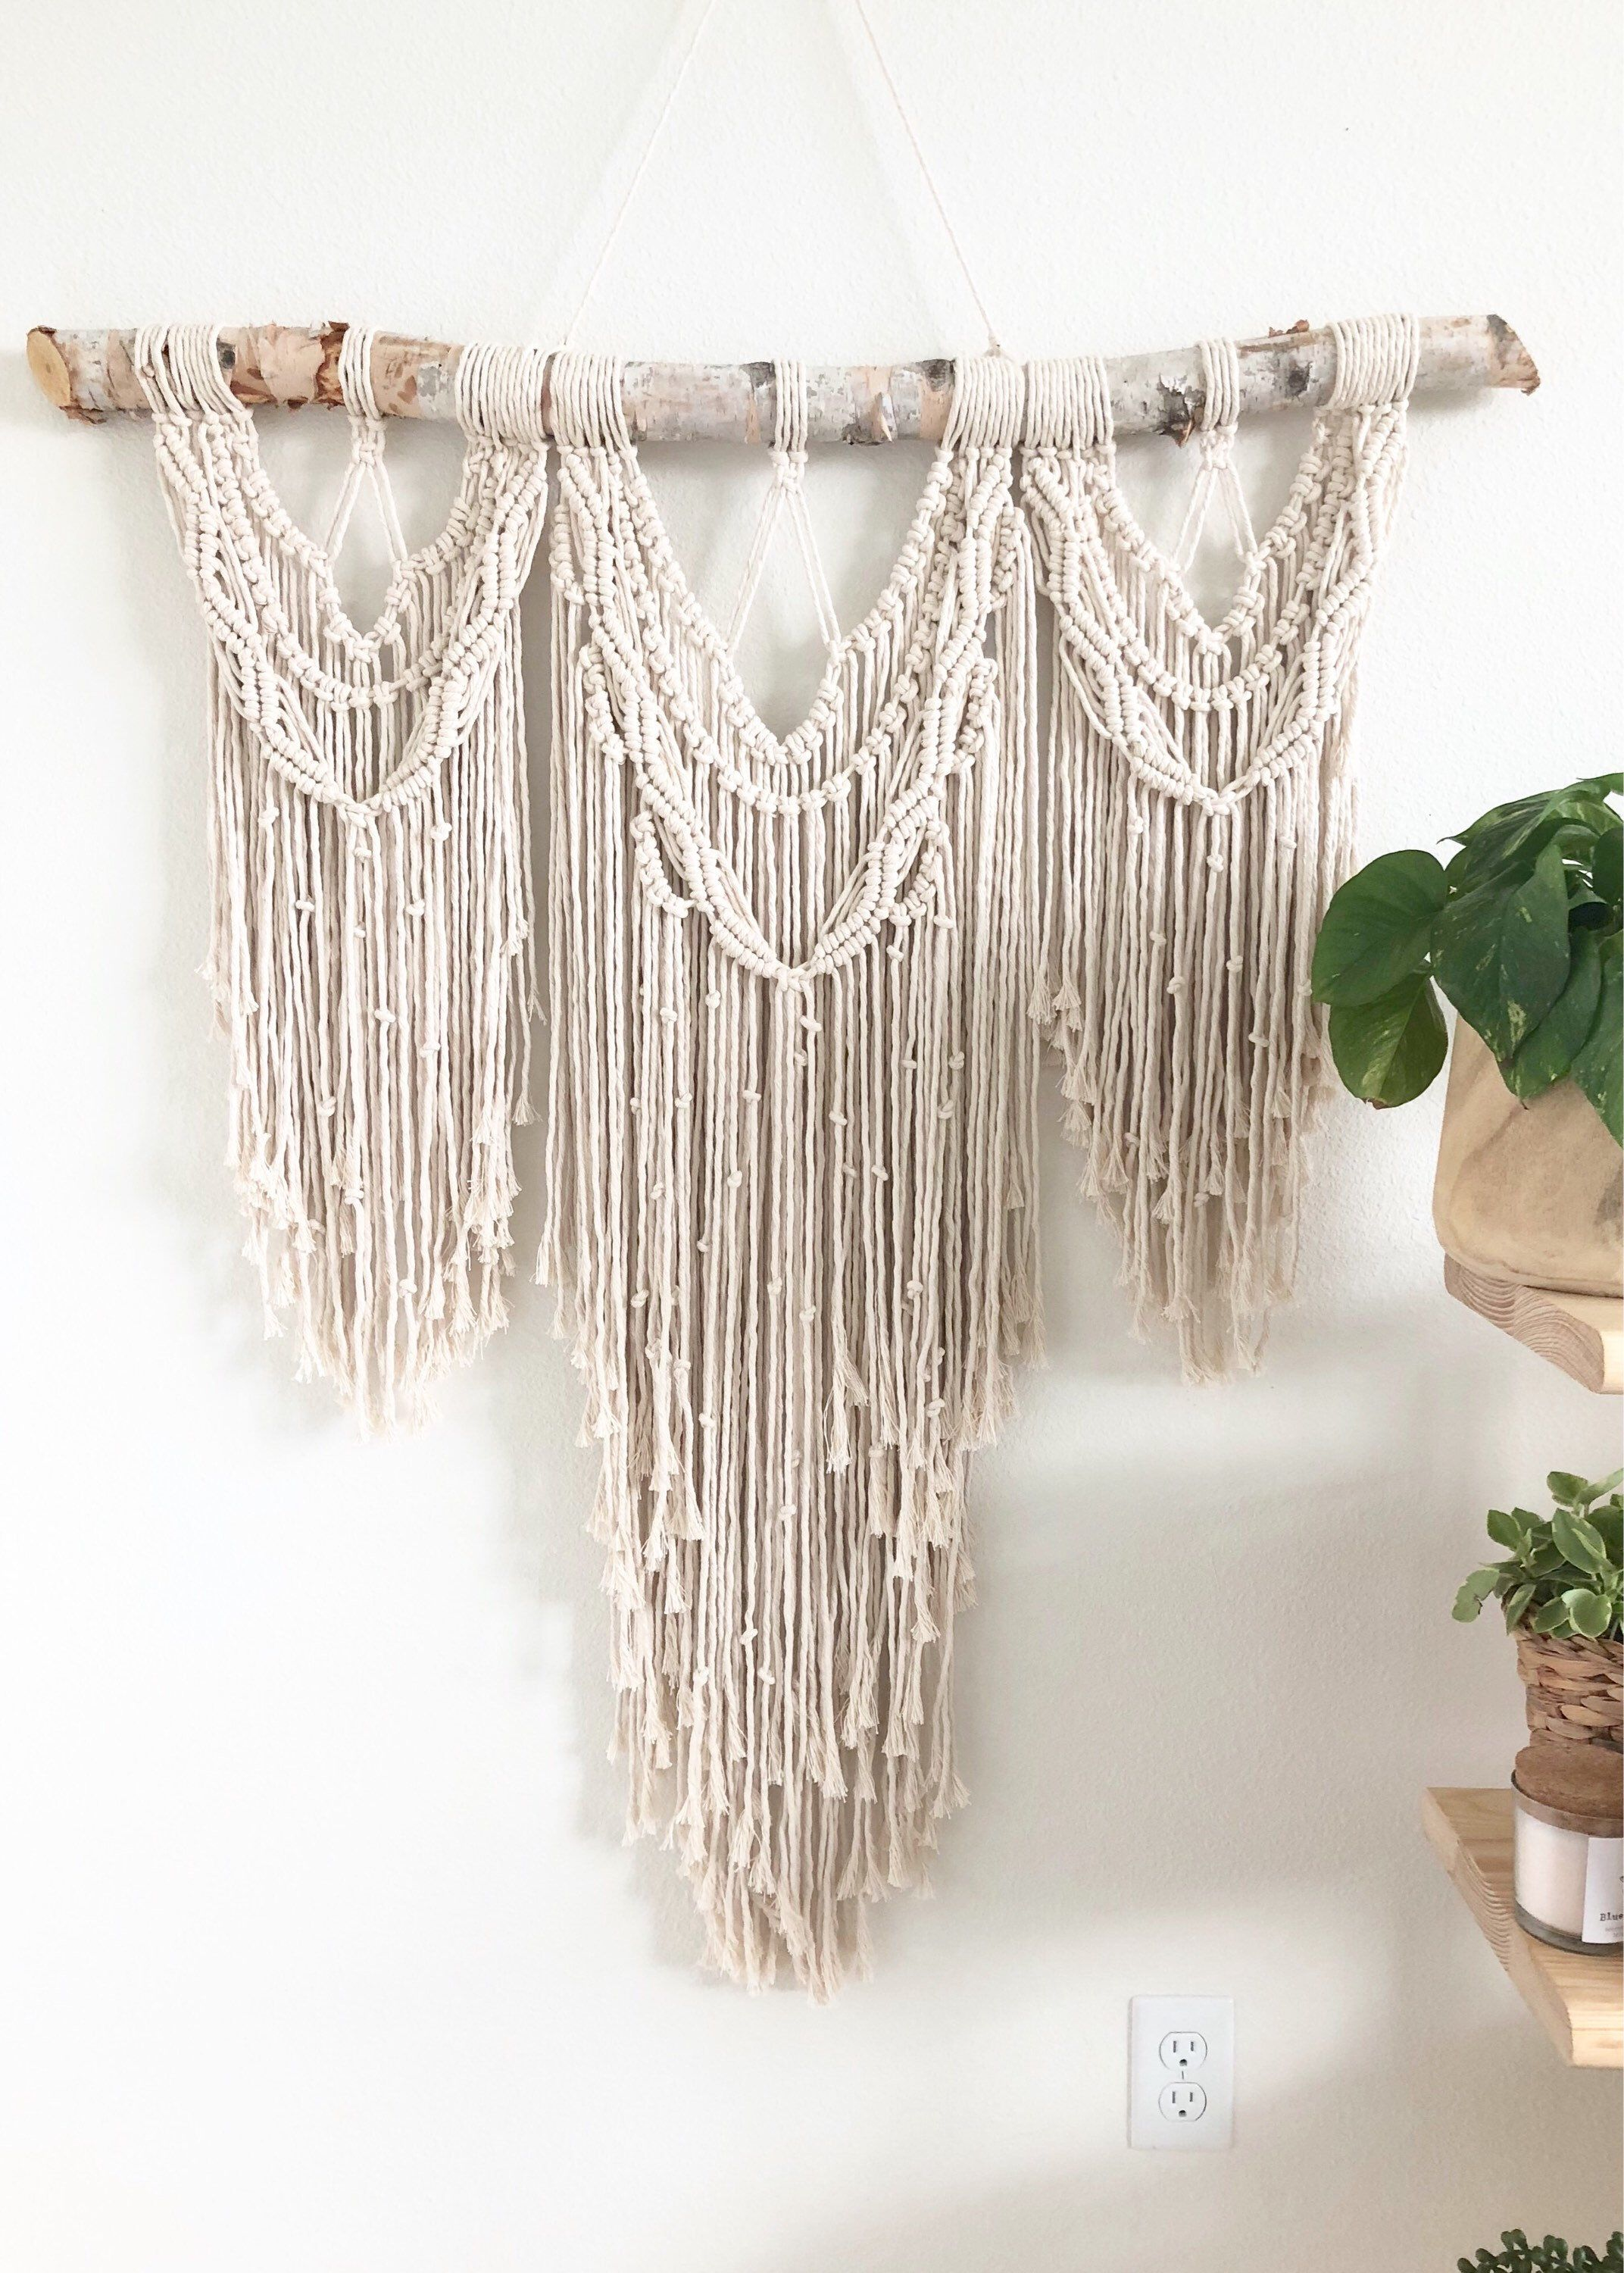 Large Macrame Wall Hanging Macrame Mural Wall Hanging Woven Tapestry Wall Hanging Macrame Wall Hanging Macrame Wedding Backdrop Large Macrame Wall Hanging